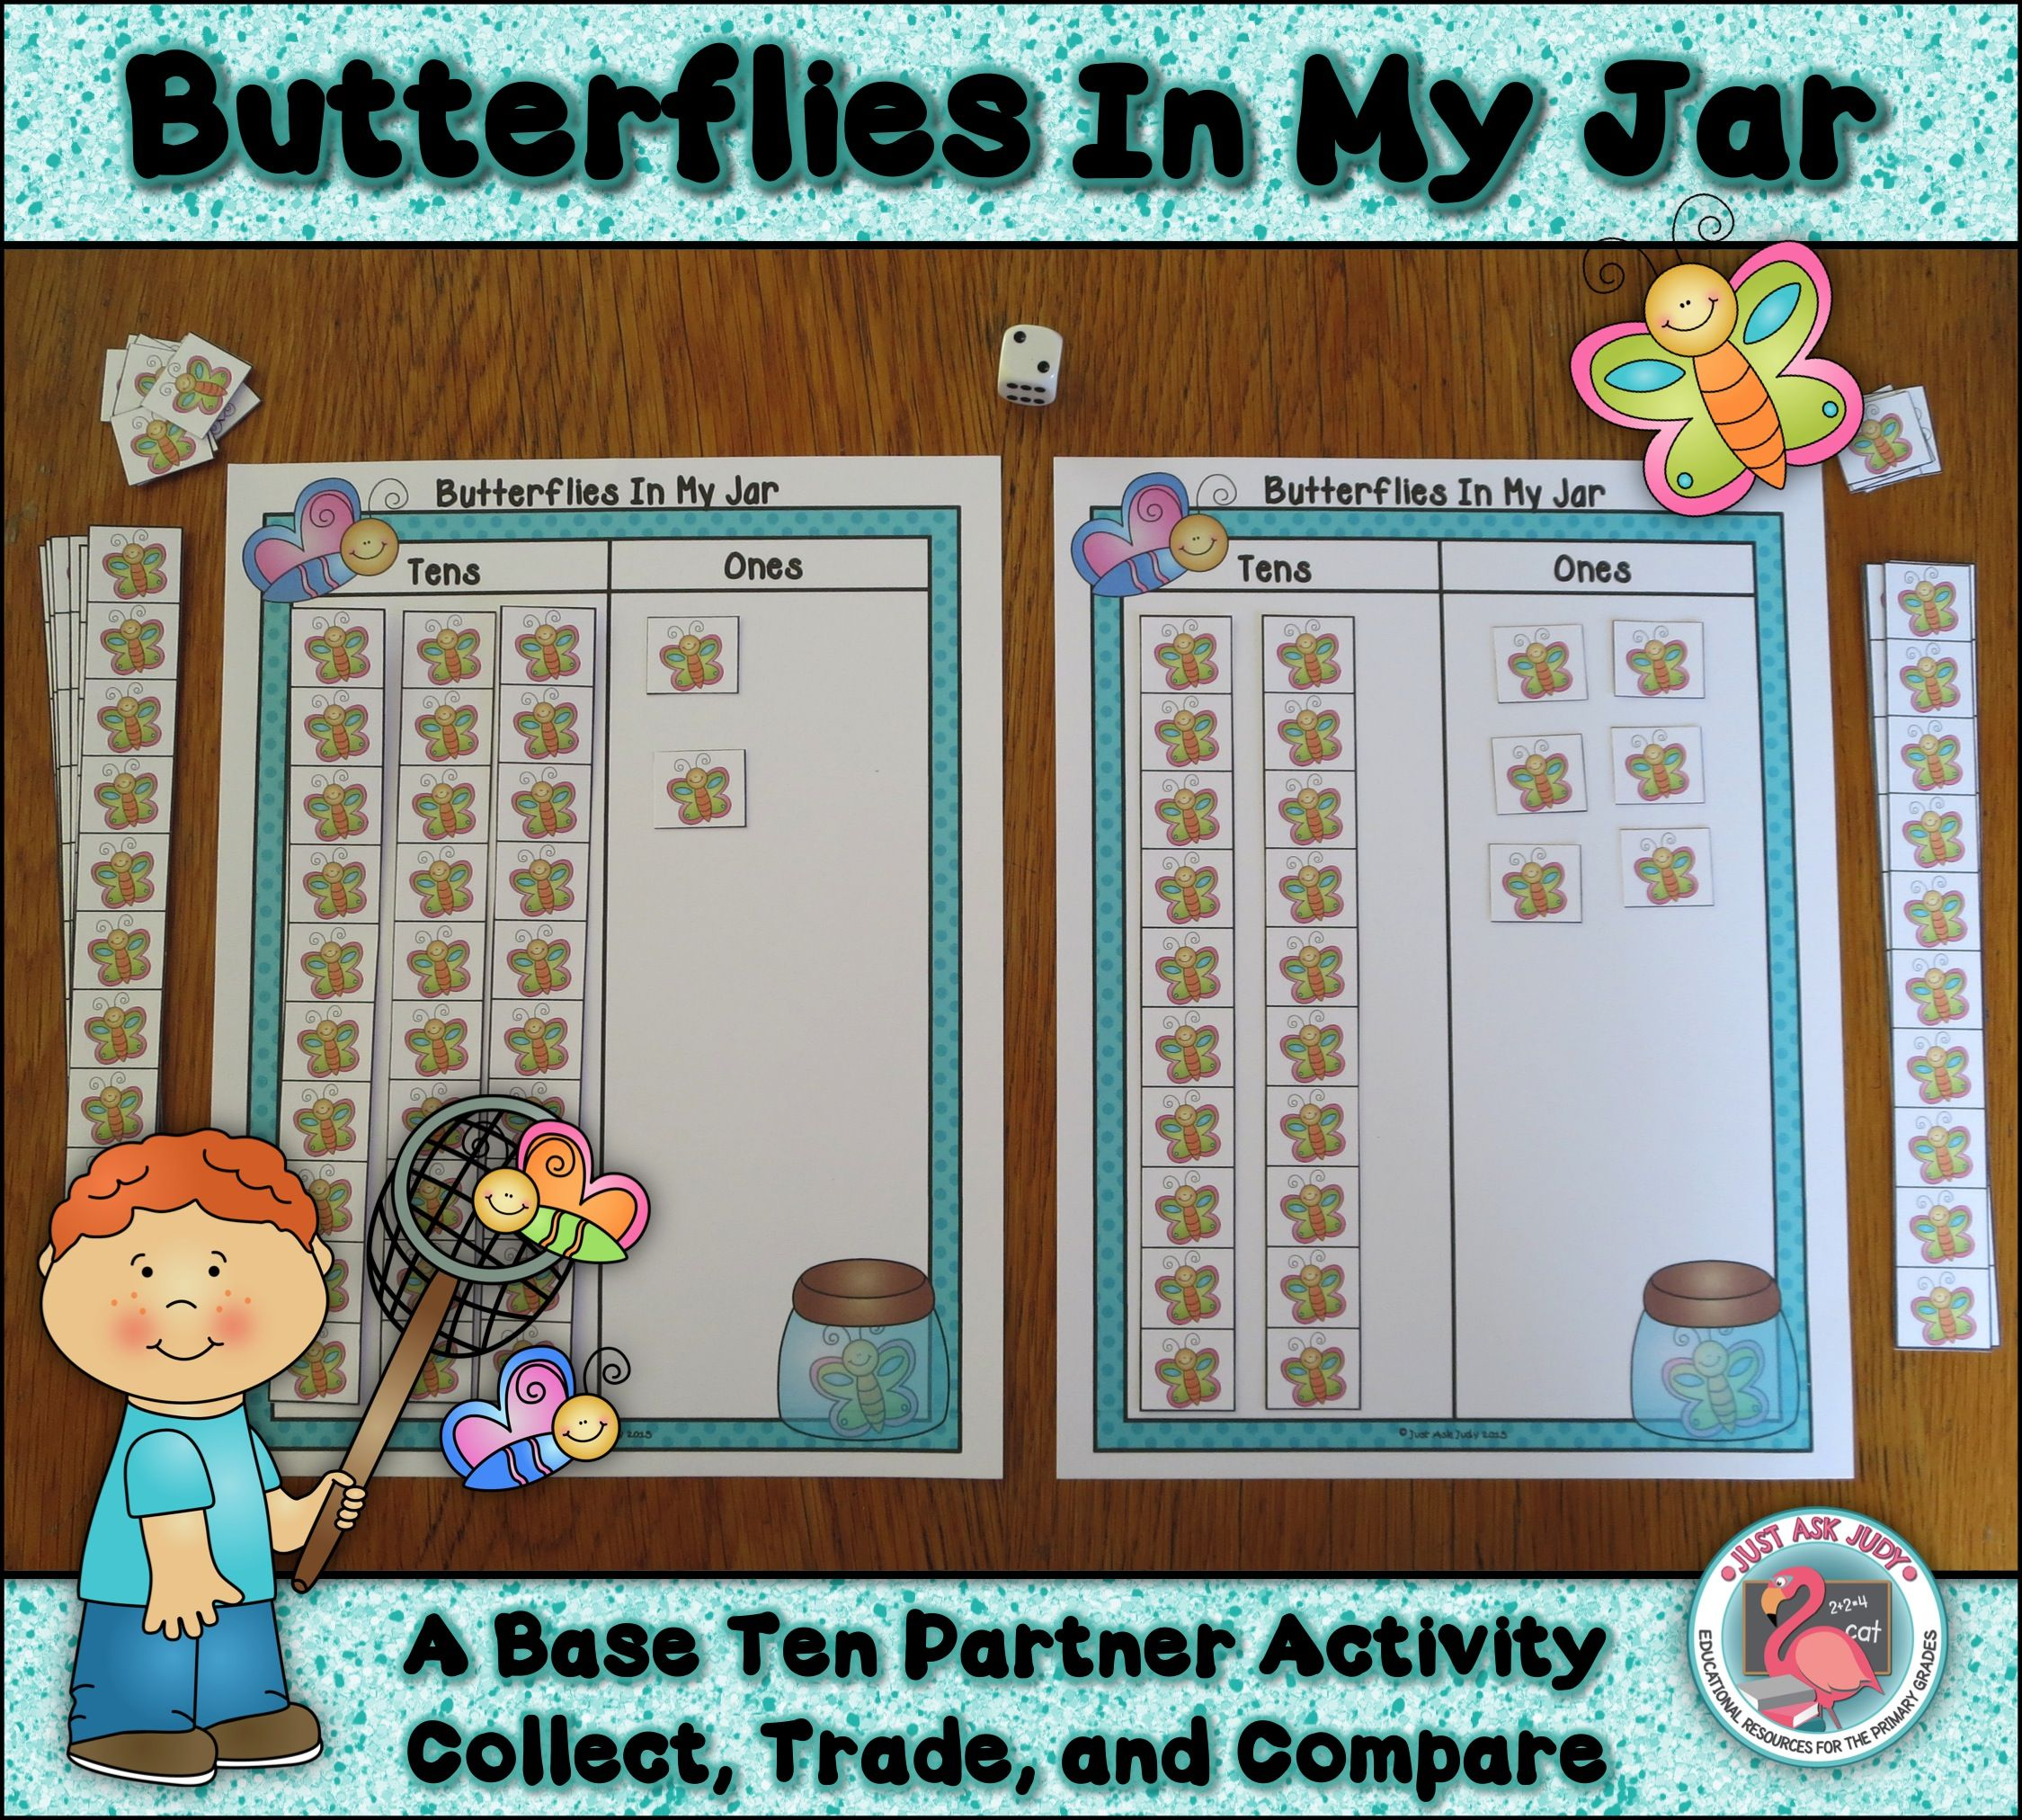 This Butterfly Themed Partner Activity Reinforces